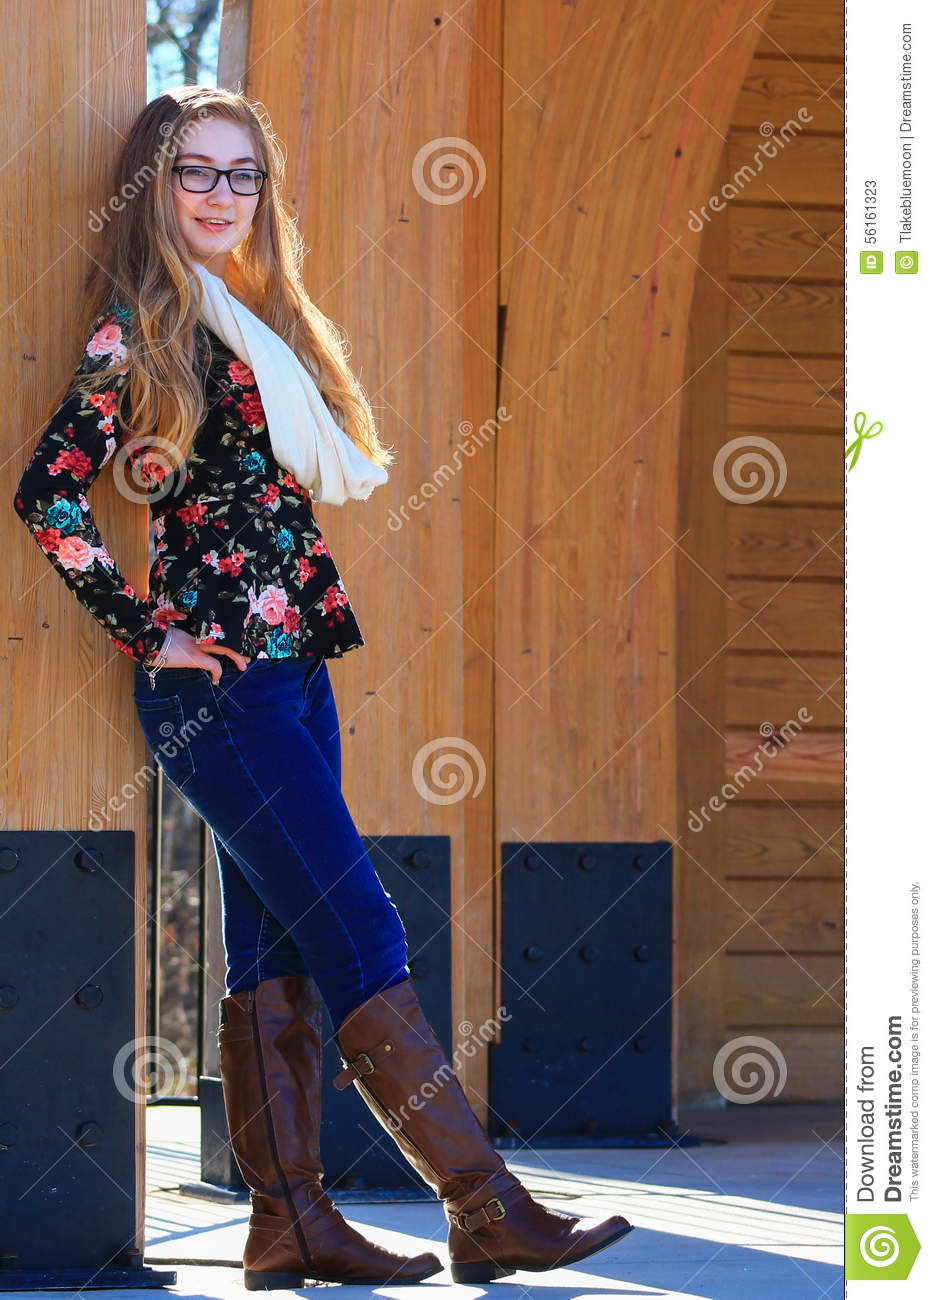 Boots Teen Picture 19